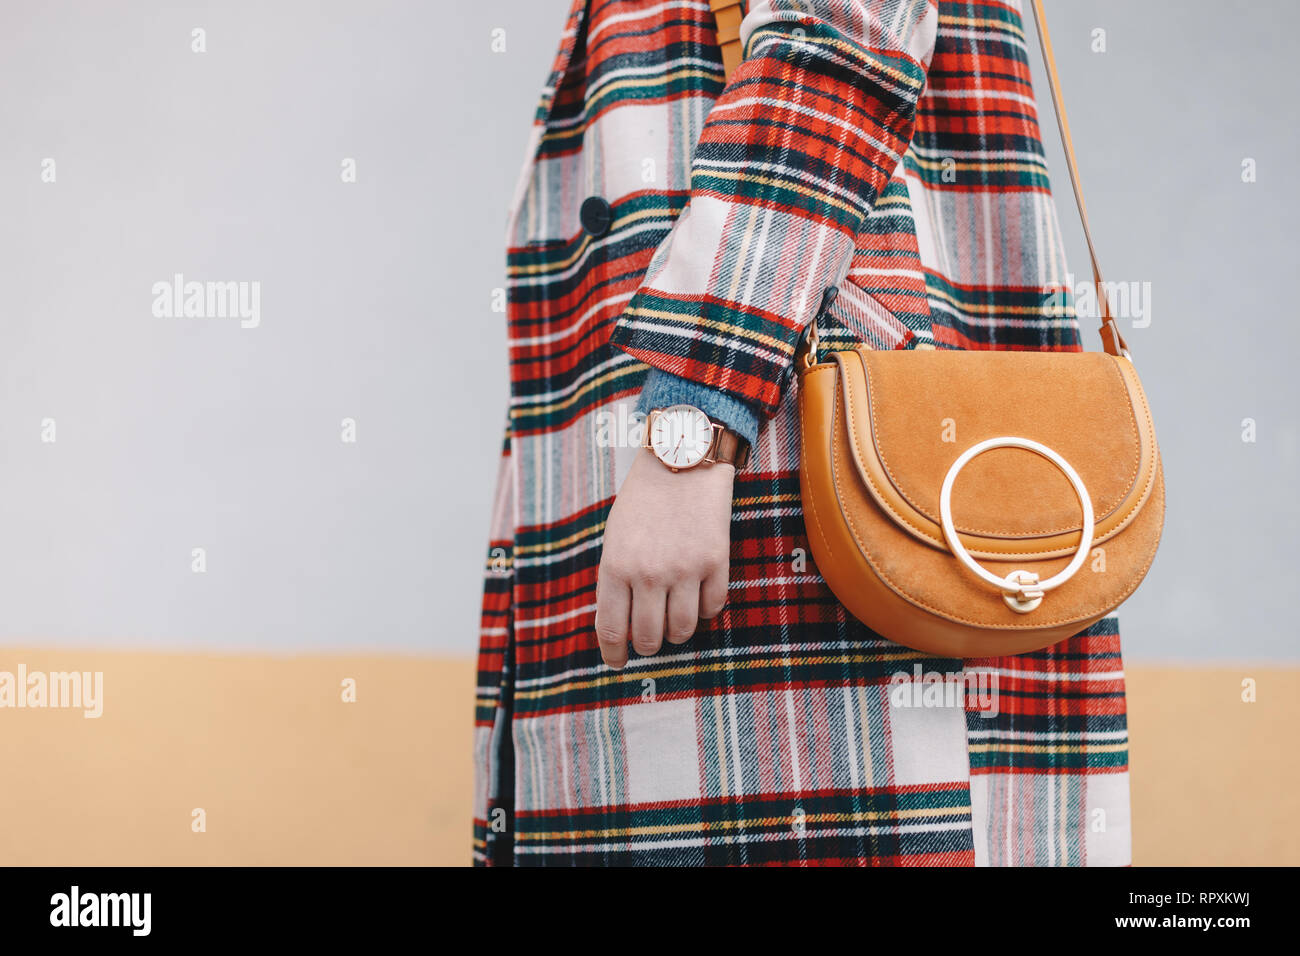 Close-up detail of stylish young woman wearing a coat with tartan pattern and a wrist watch while holding a fancy yellow bag in front of a multicolore - Stock Image